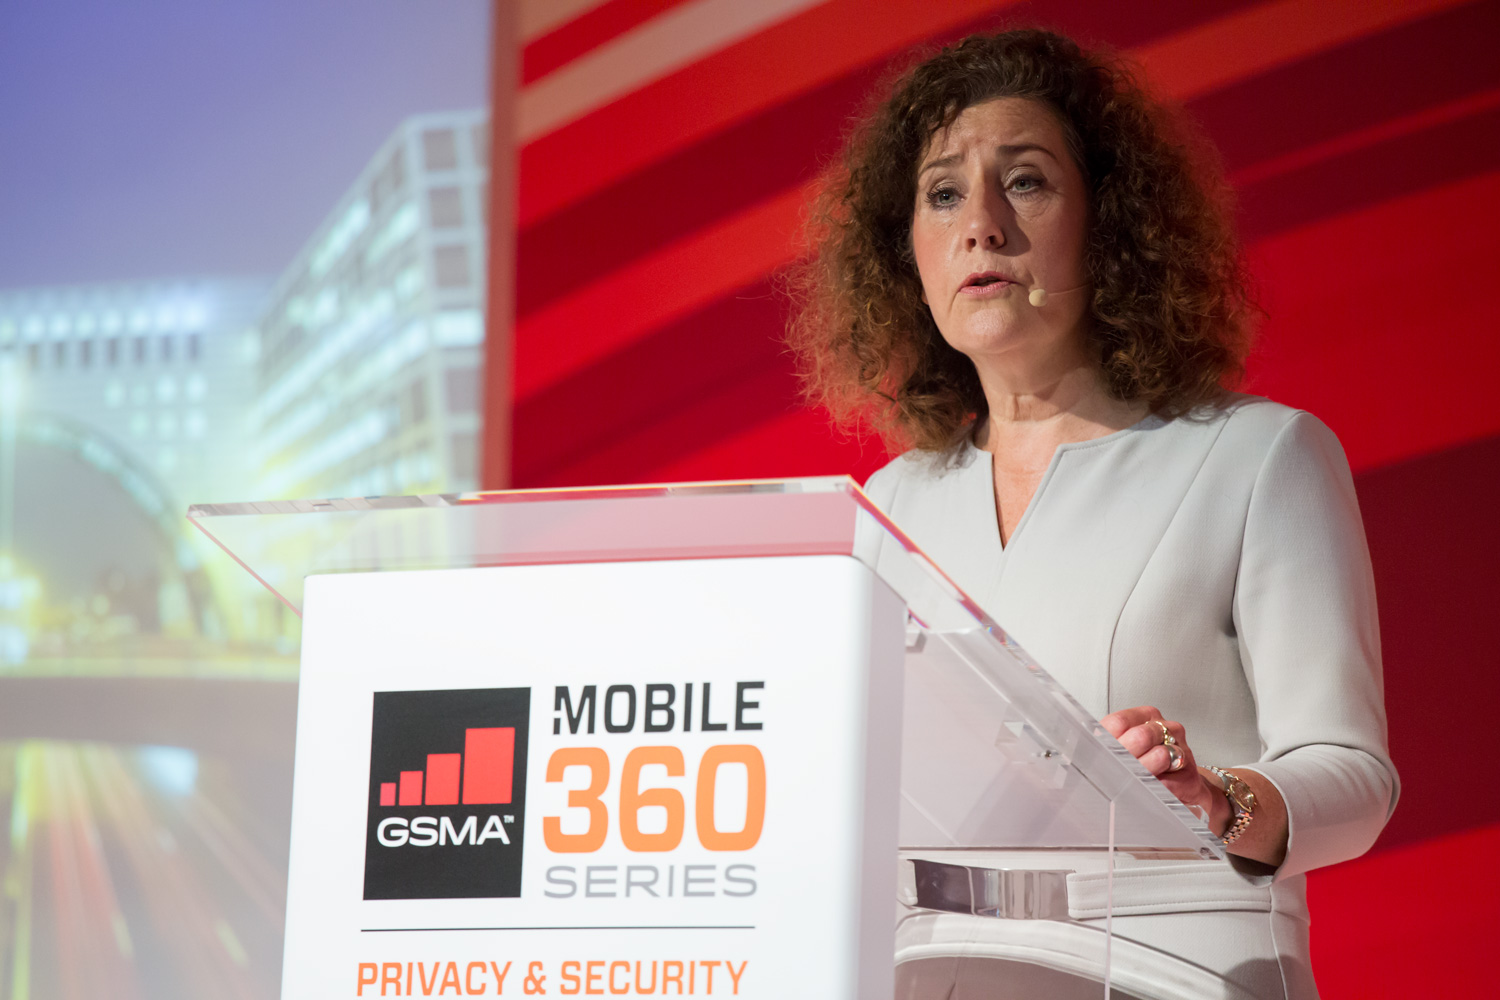 Ingrid van Engelshoven tijdens EVENEMENT MOBILE 360 PRIVACY & SECURITY